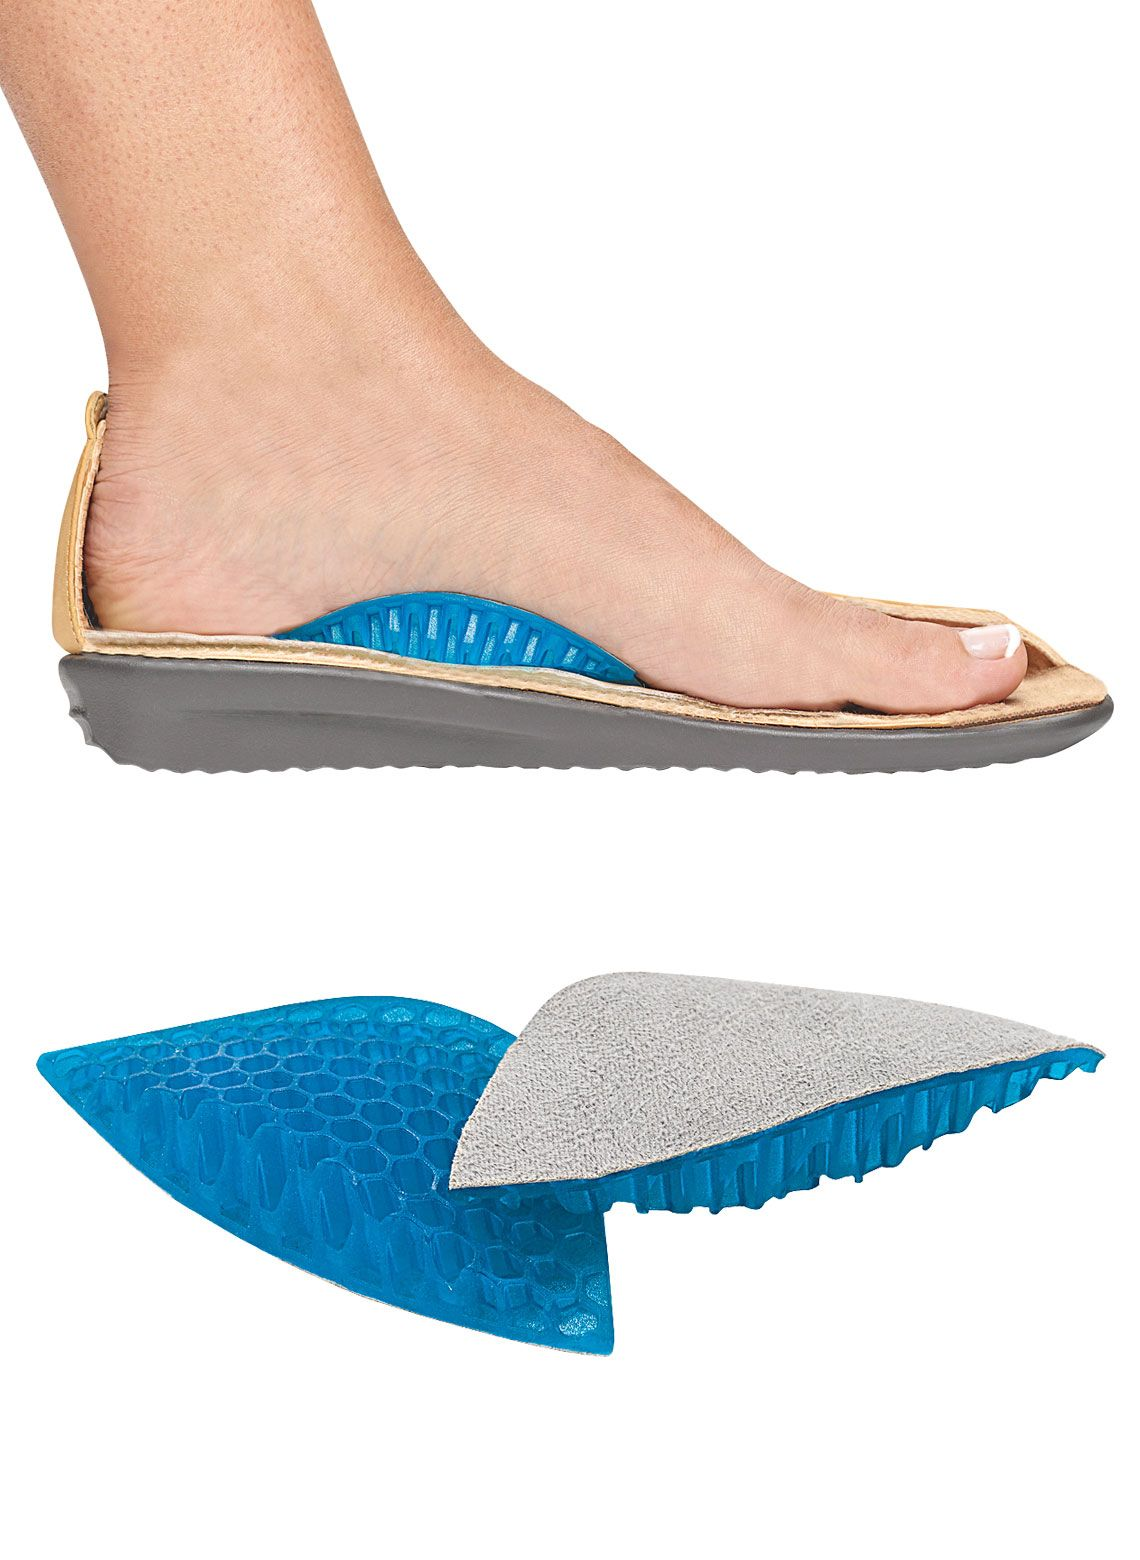 Gel Heel/Arch Support | Shoes for high